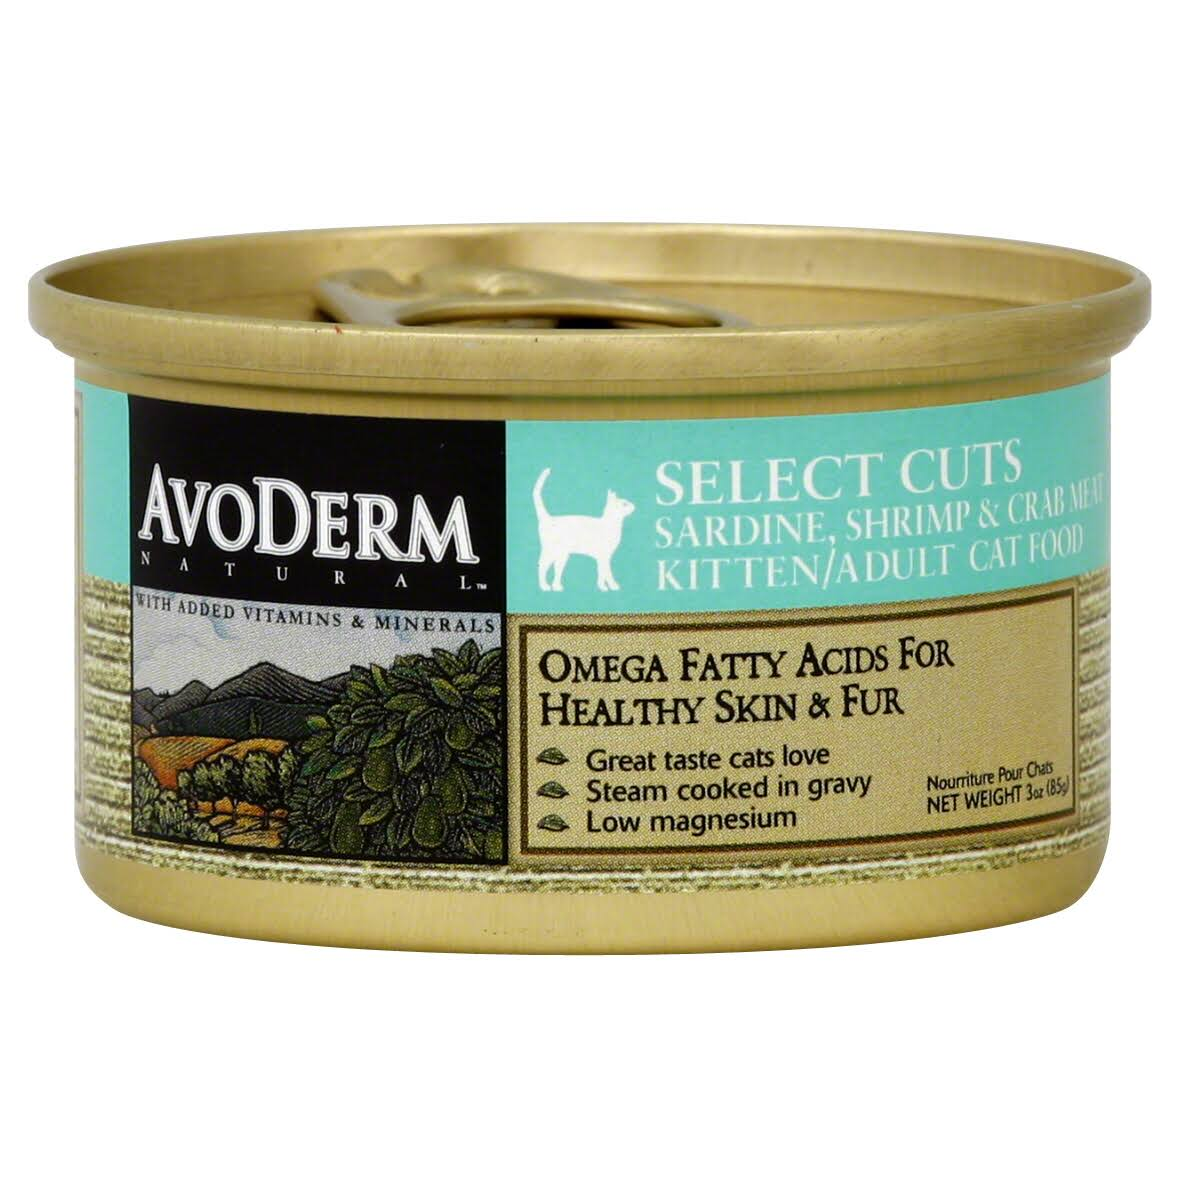 Avoderm Natural Select Cuts Cat Food - Sardine Shrimp & Crab Meat